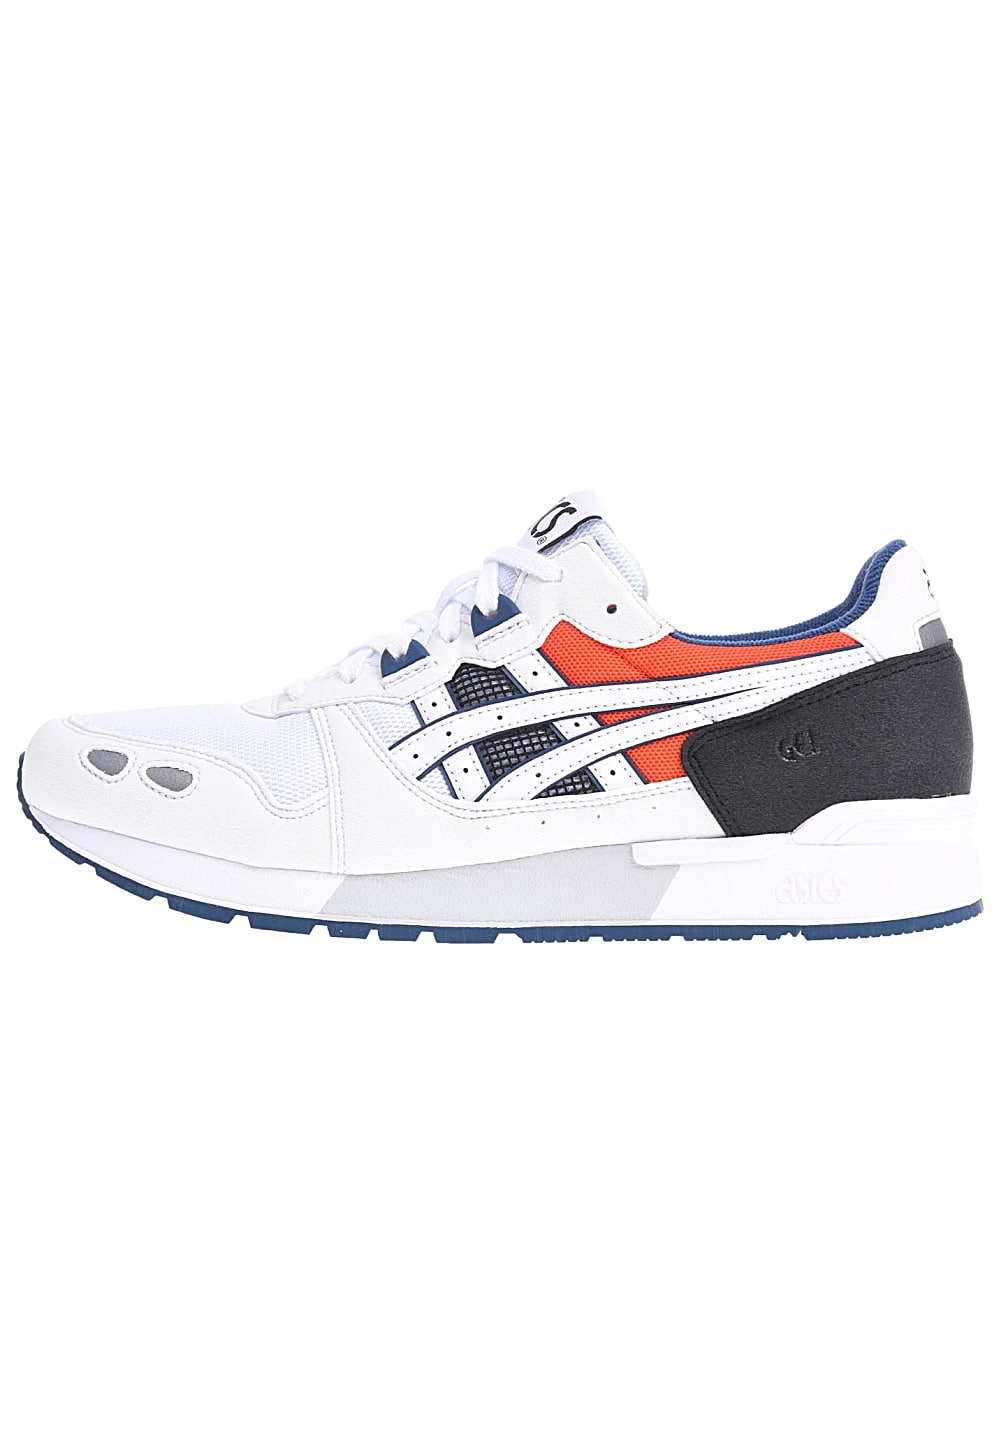 asics sneakers heren wit